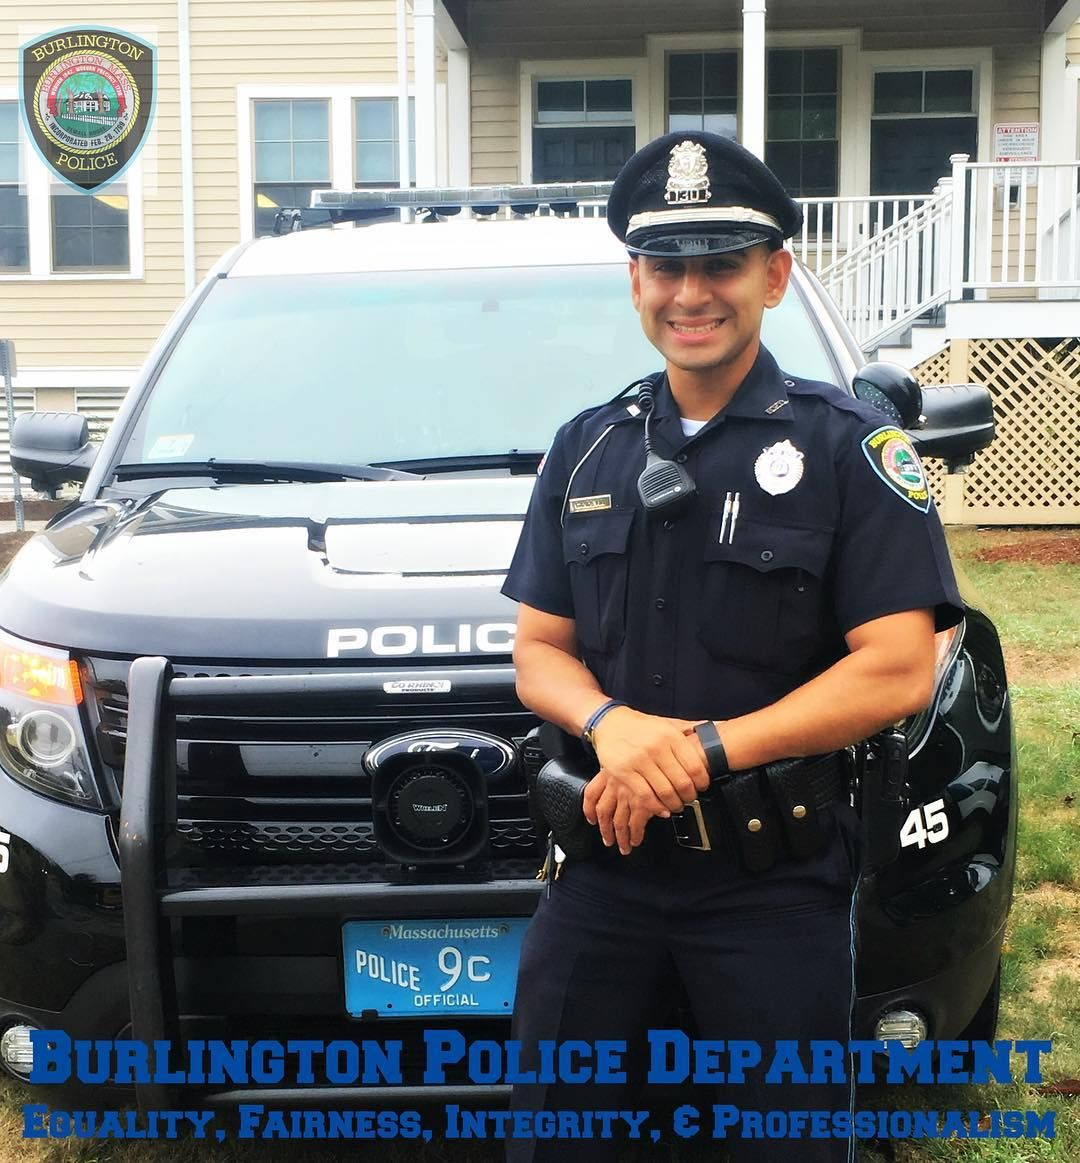 Recruitment The Burlington Massachusetts Police Department Will Be Having A Police Officers Exam On 10 8 Police Department Police Officer Law Enforcement Jobs